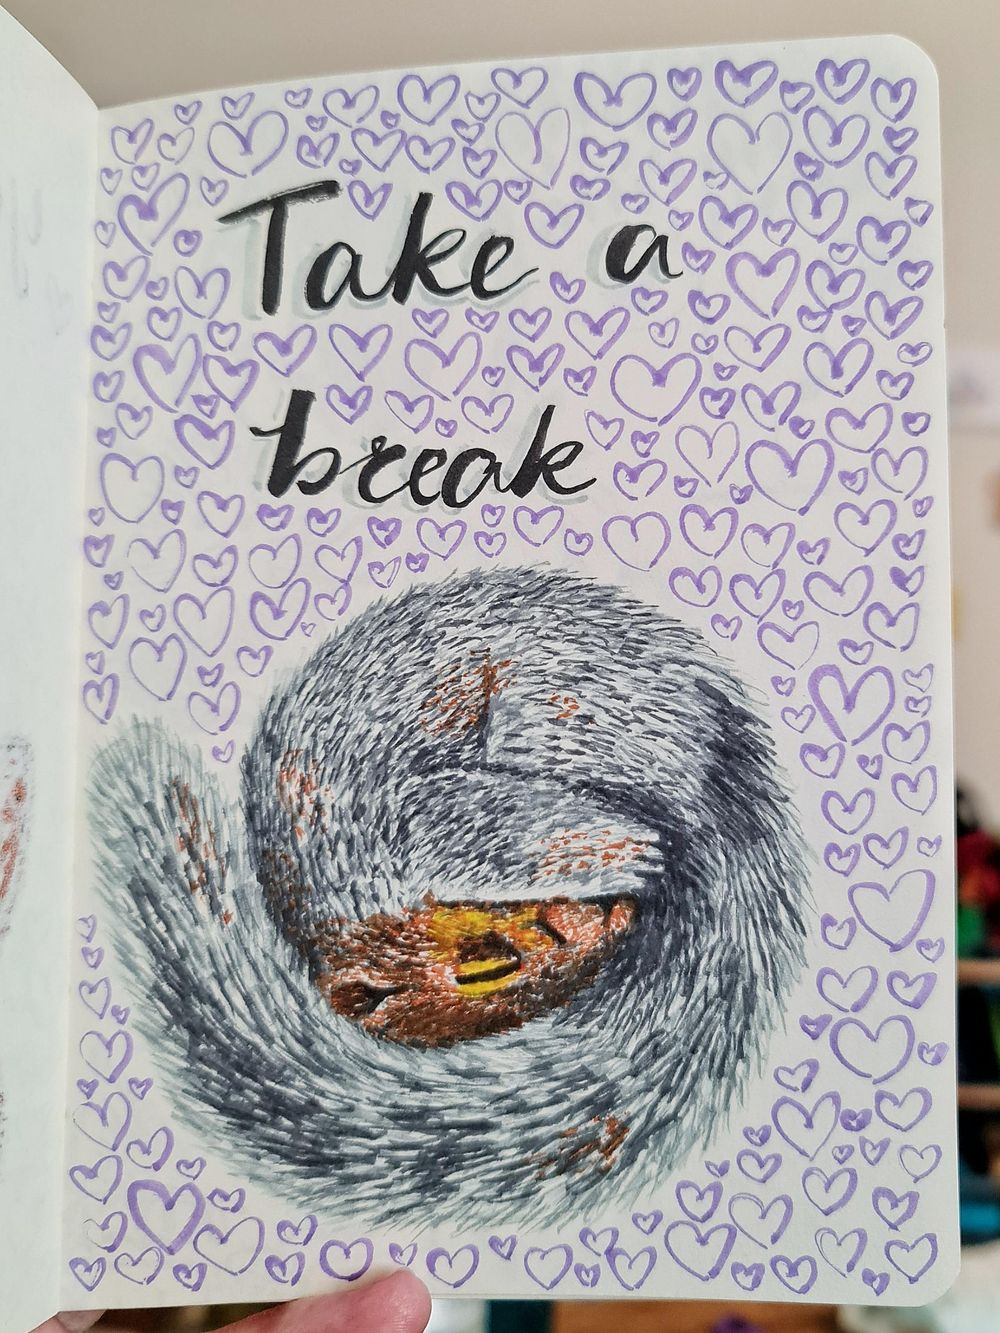 14 days of drawing art for self care - image 4 - student project